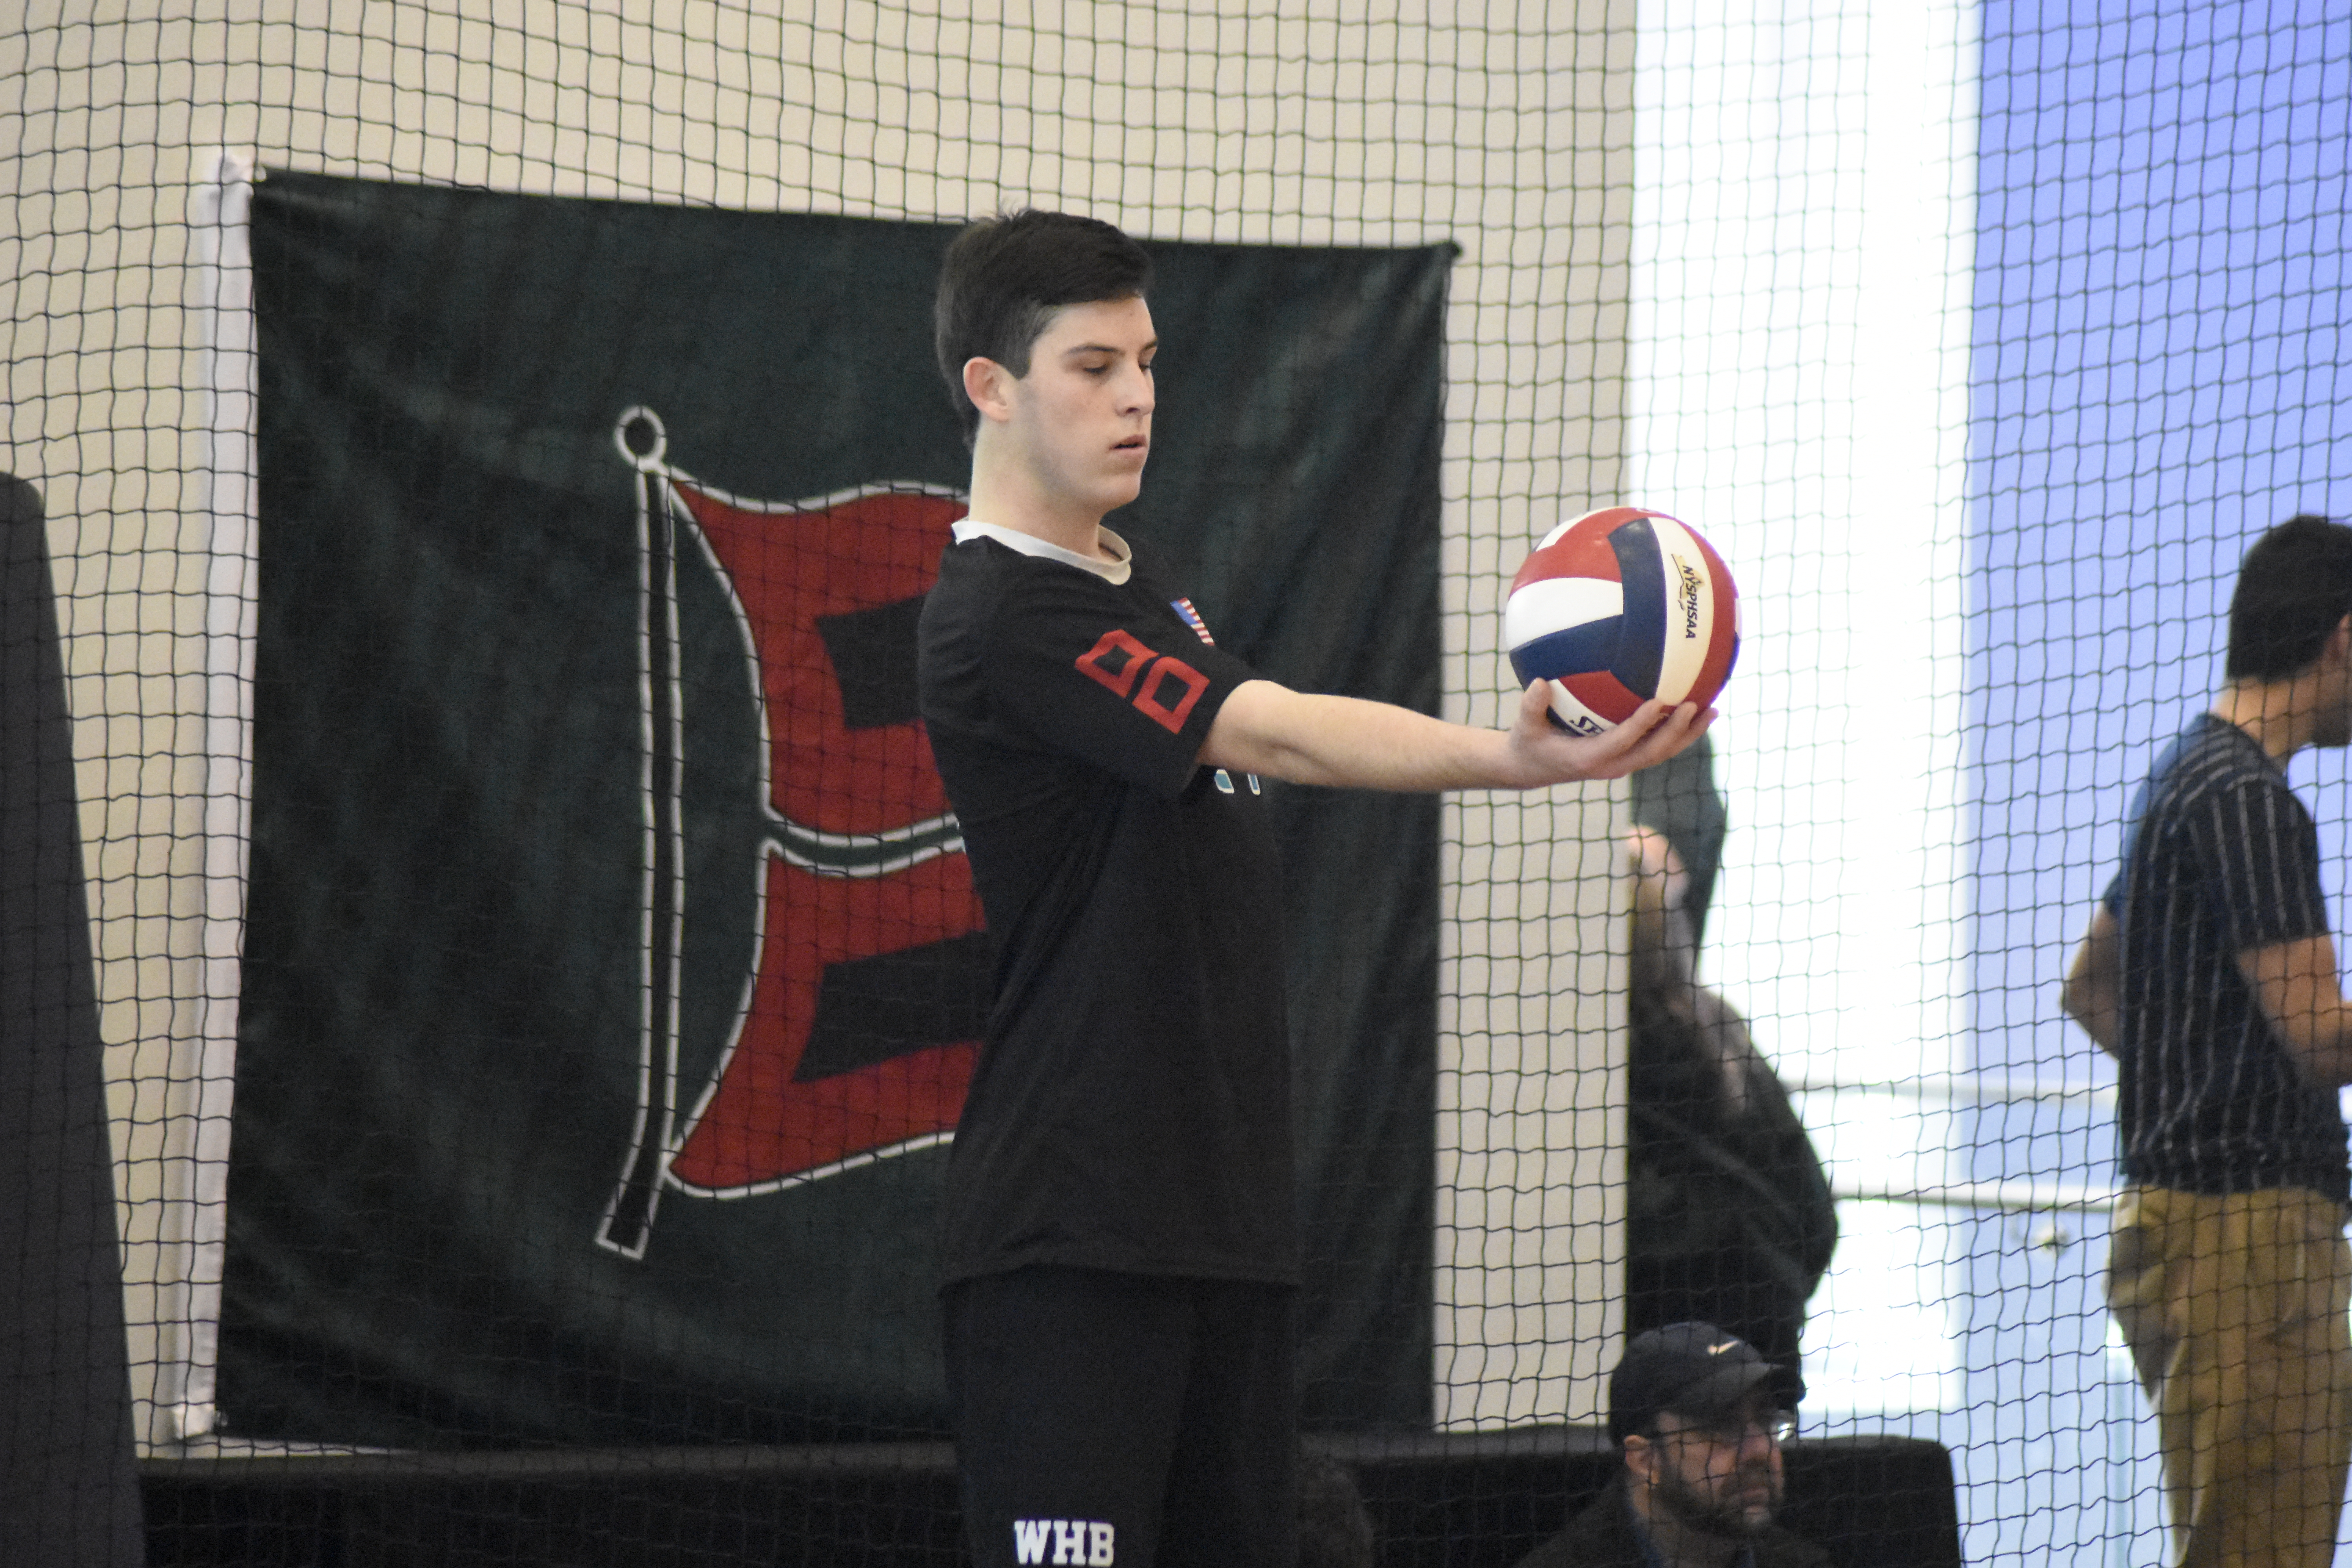 Junior Ryan Barnett's strong serving in the second game fueled a short rally for Westhampton Beach in the match against Jamesville-DeWitt.